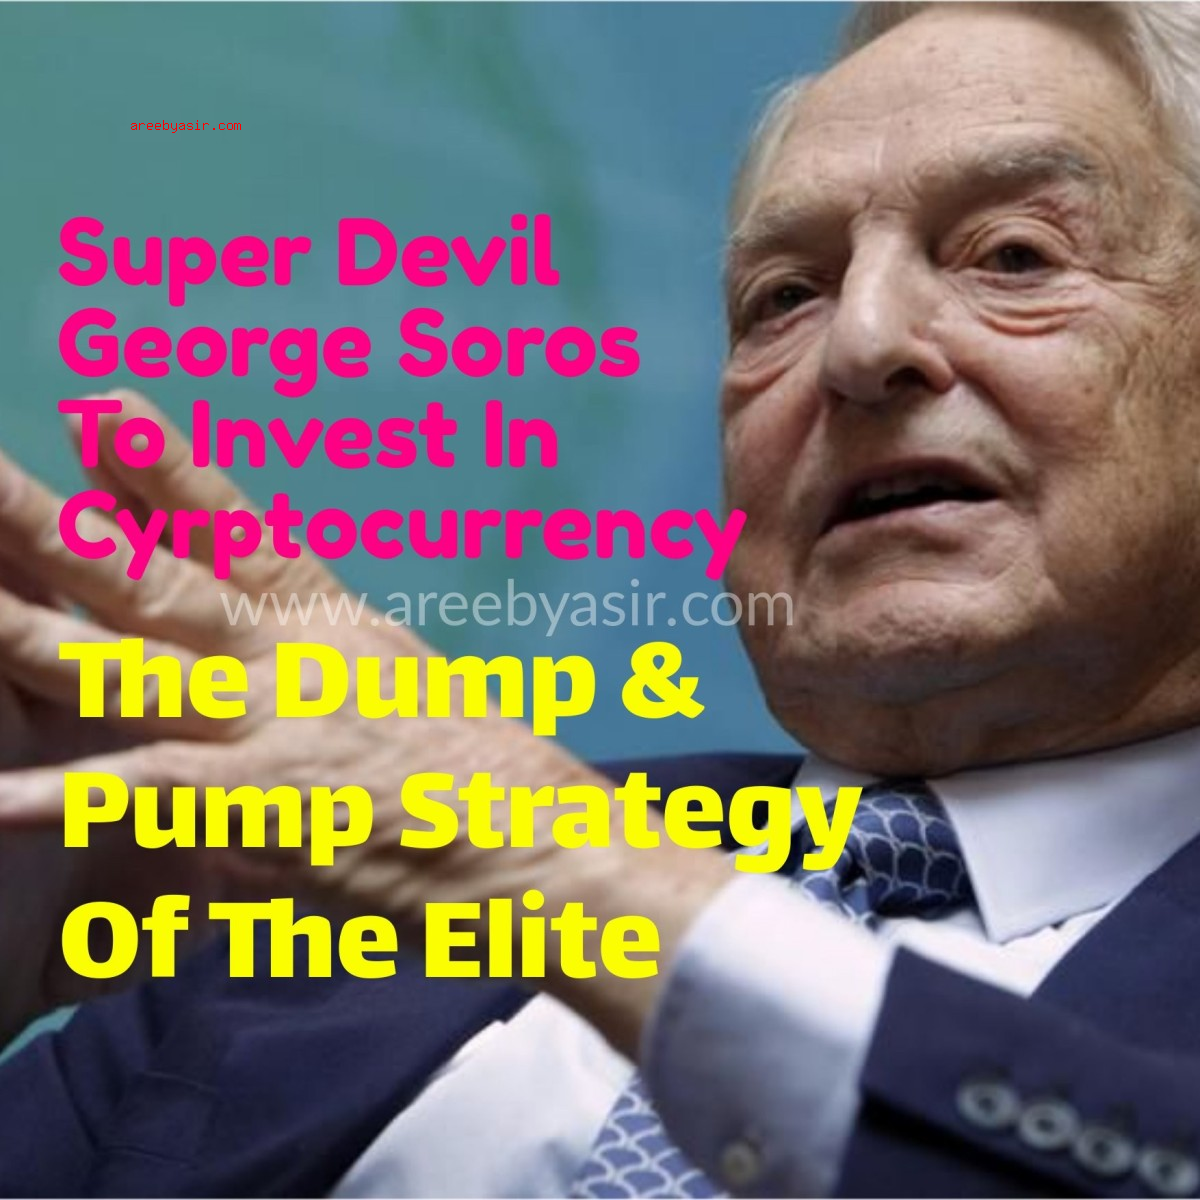 George Soros Does a 180 on Cryptocurrency Investment – Pledges To Buy